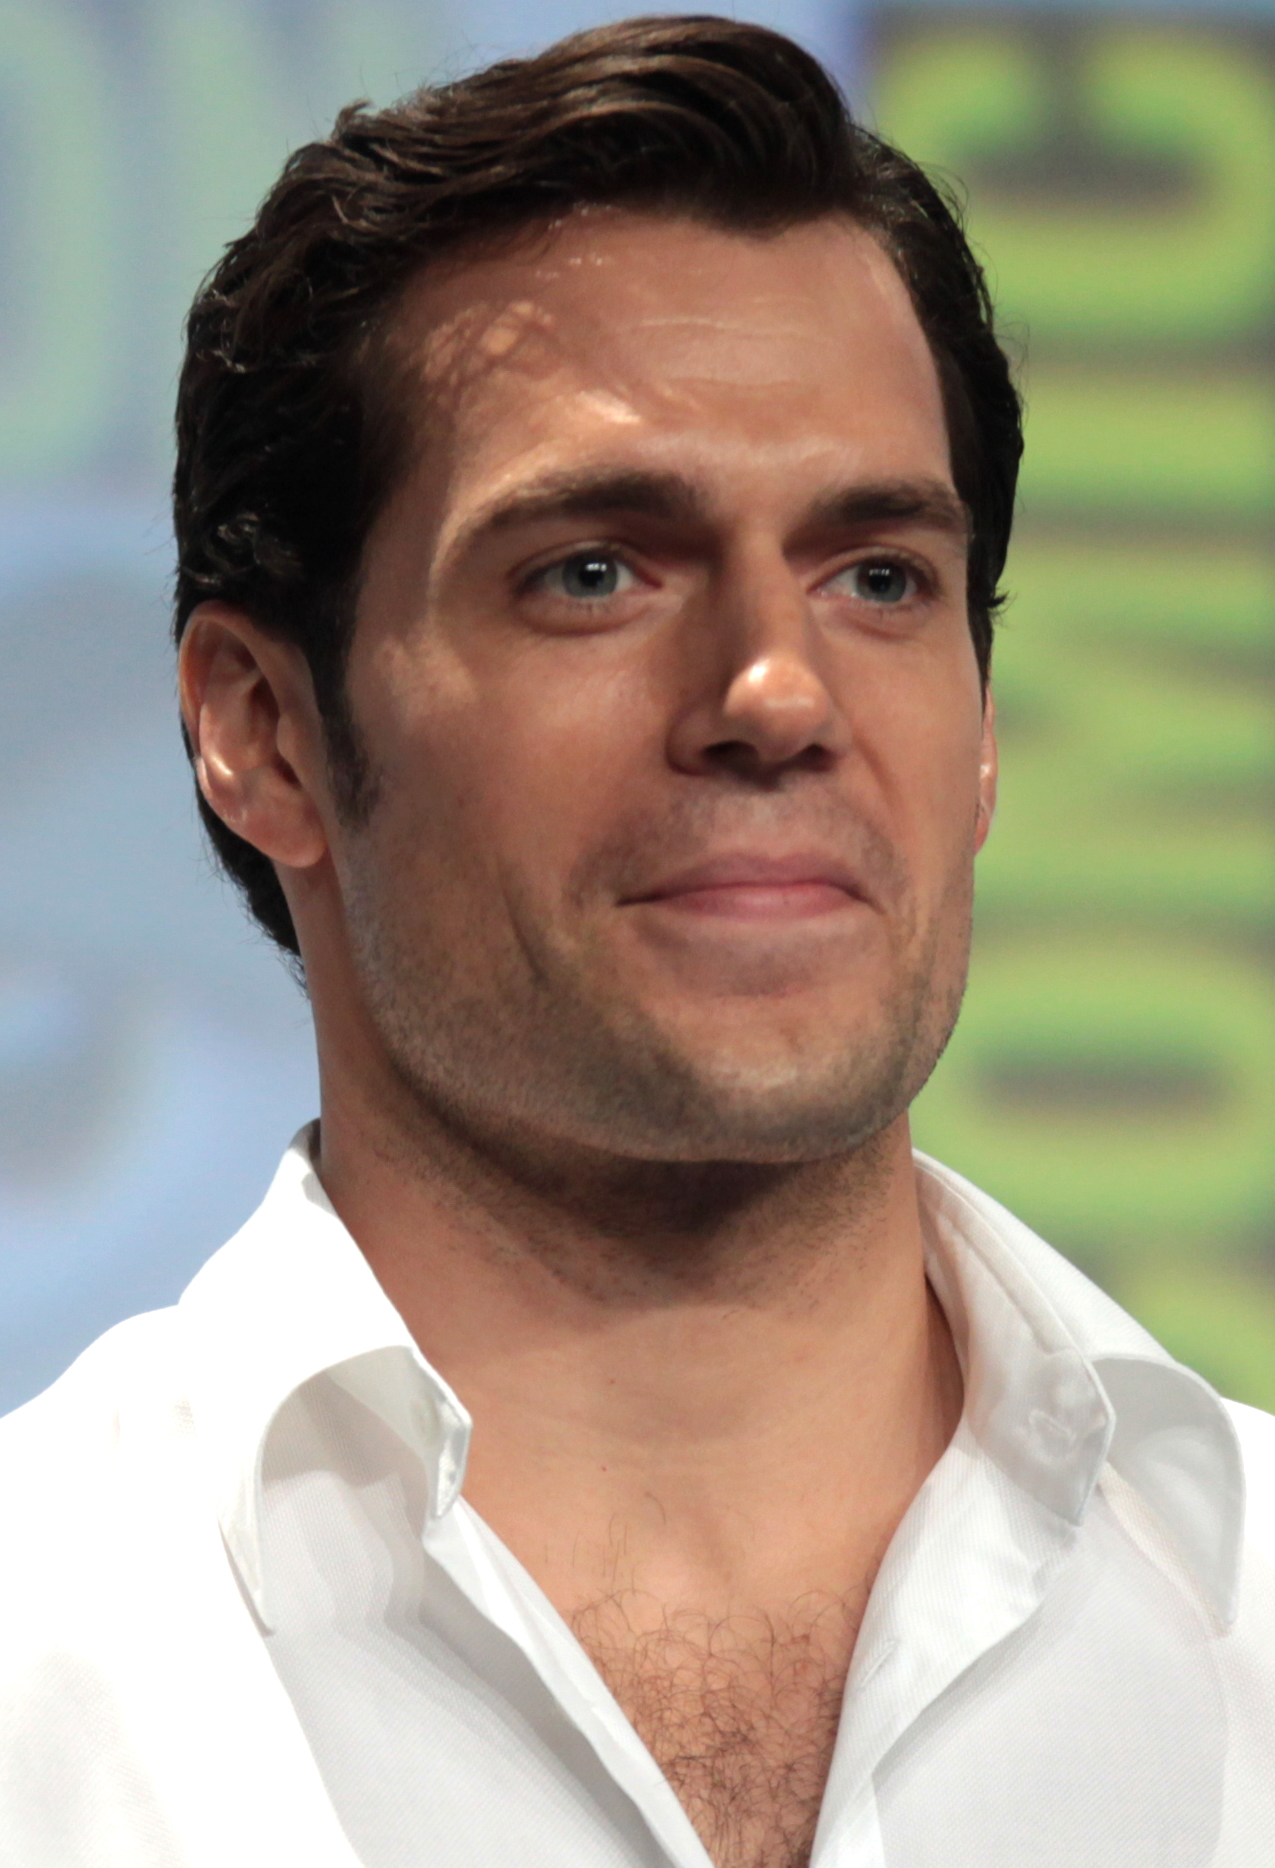 File Henry Cavill Sdcc 2014 Cropped Jpg Wikimedia Commons